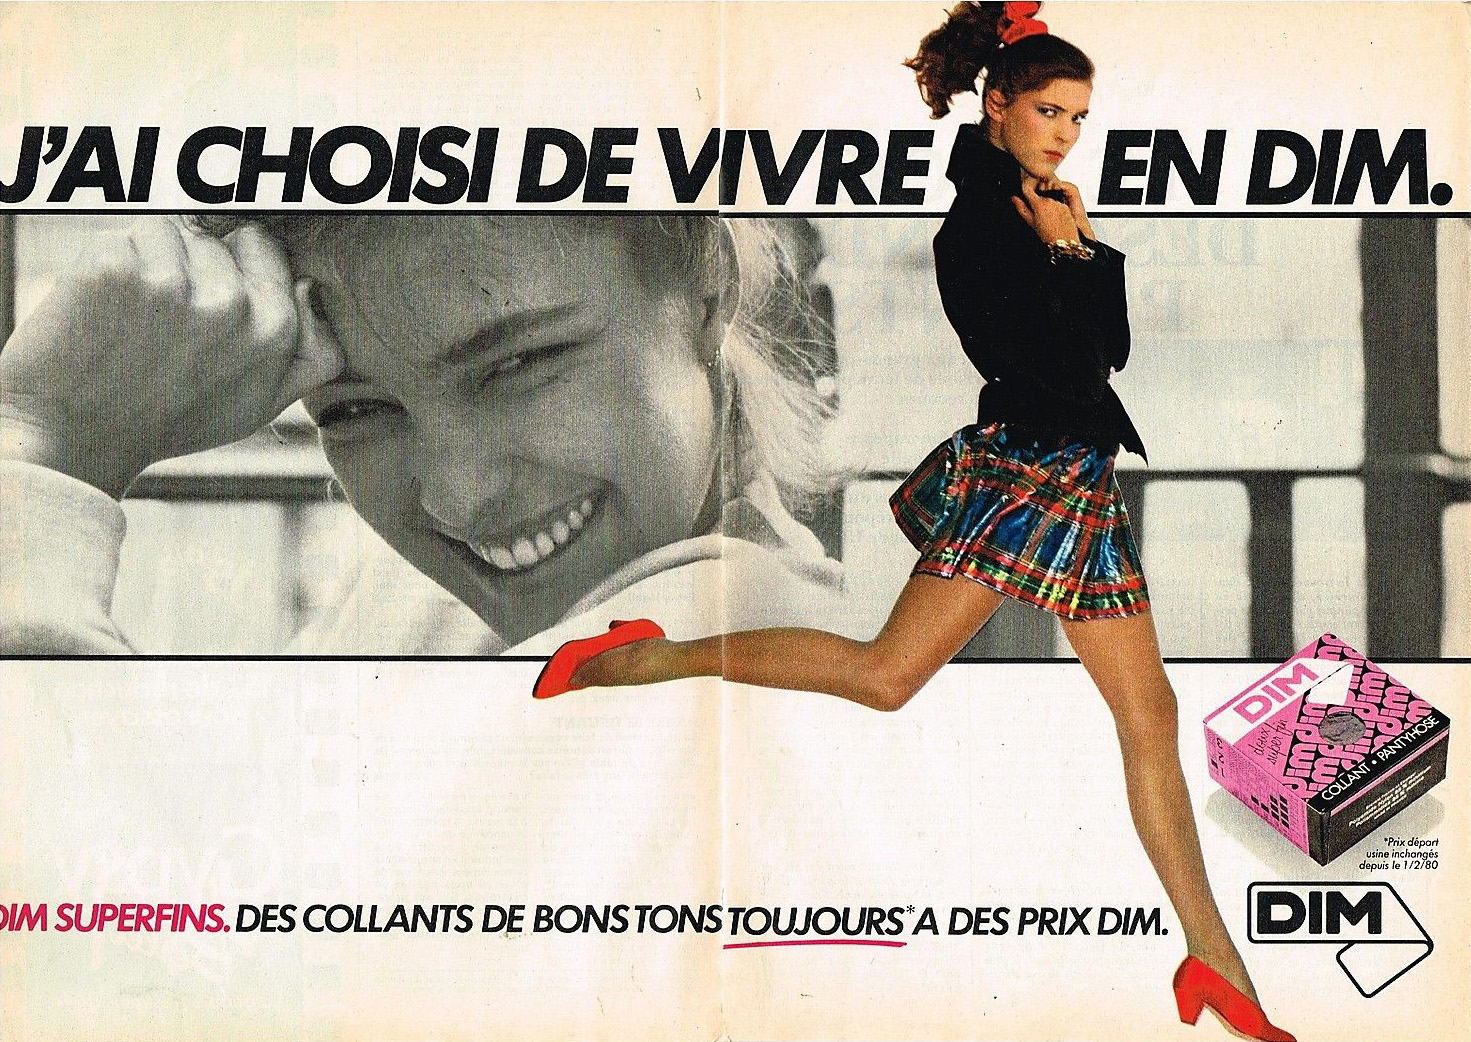 Publicité Advertising 1980 Les bas et Collants DIM Superfins